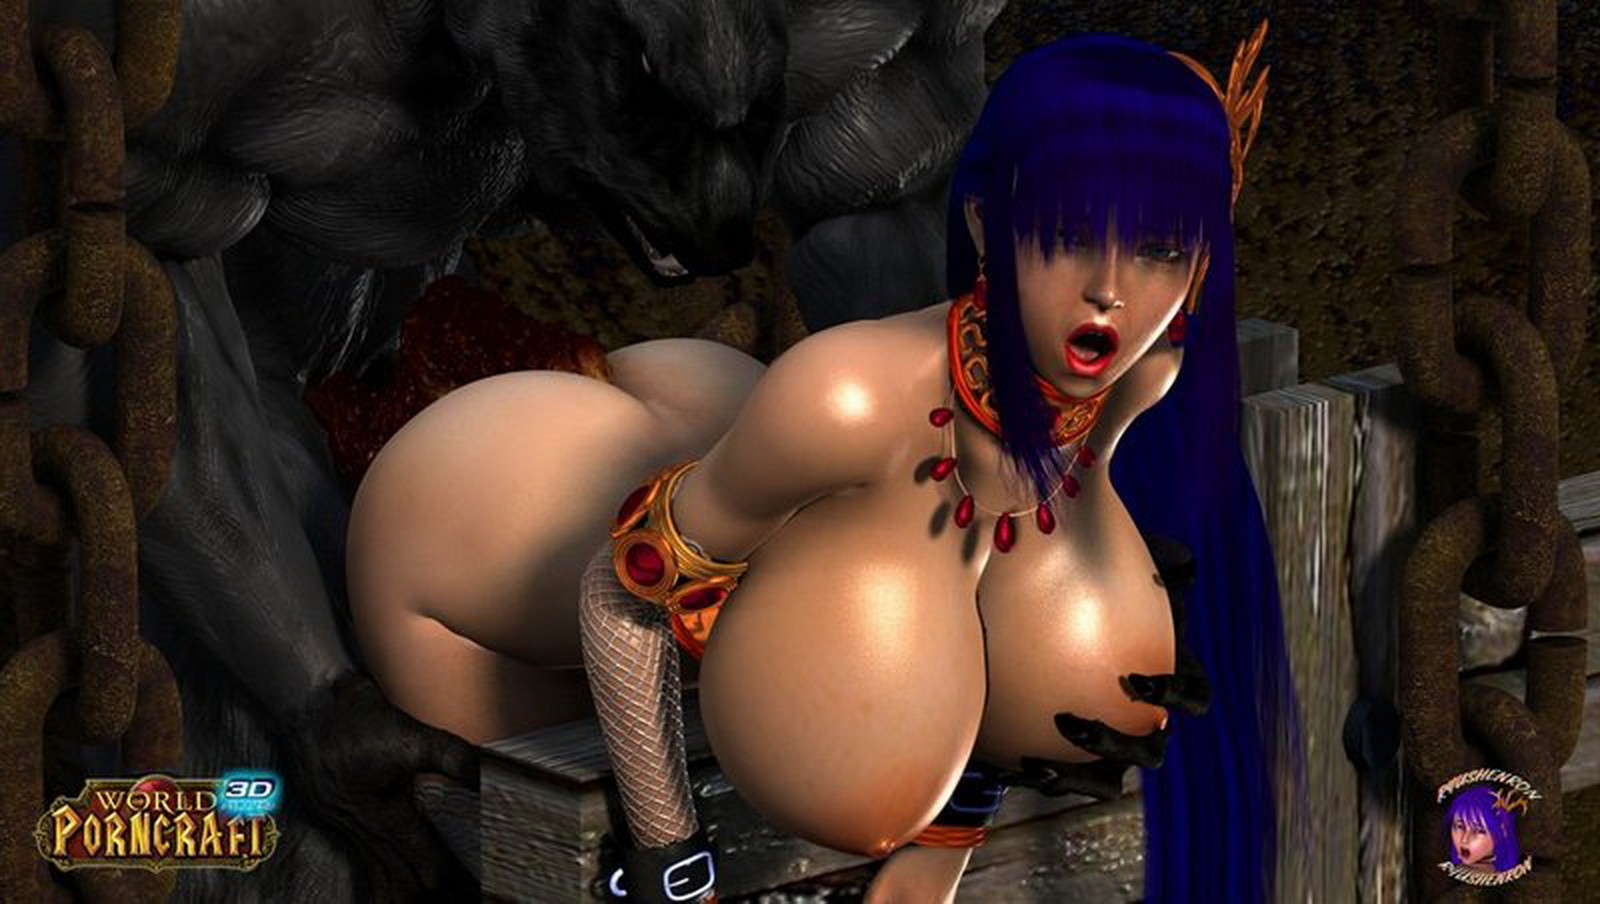 3d world of porncraft video erotic image